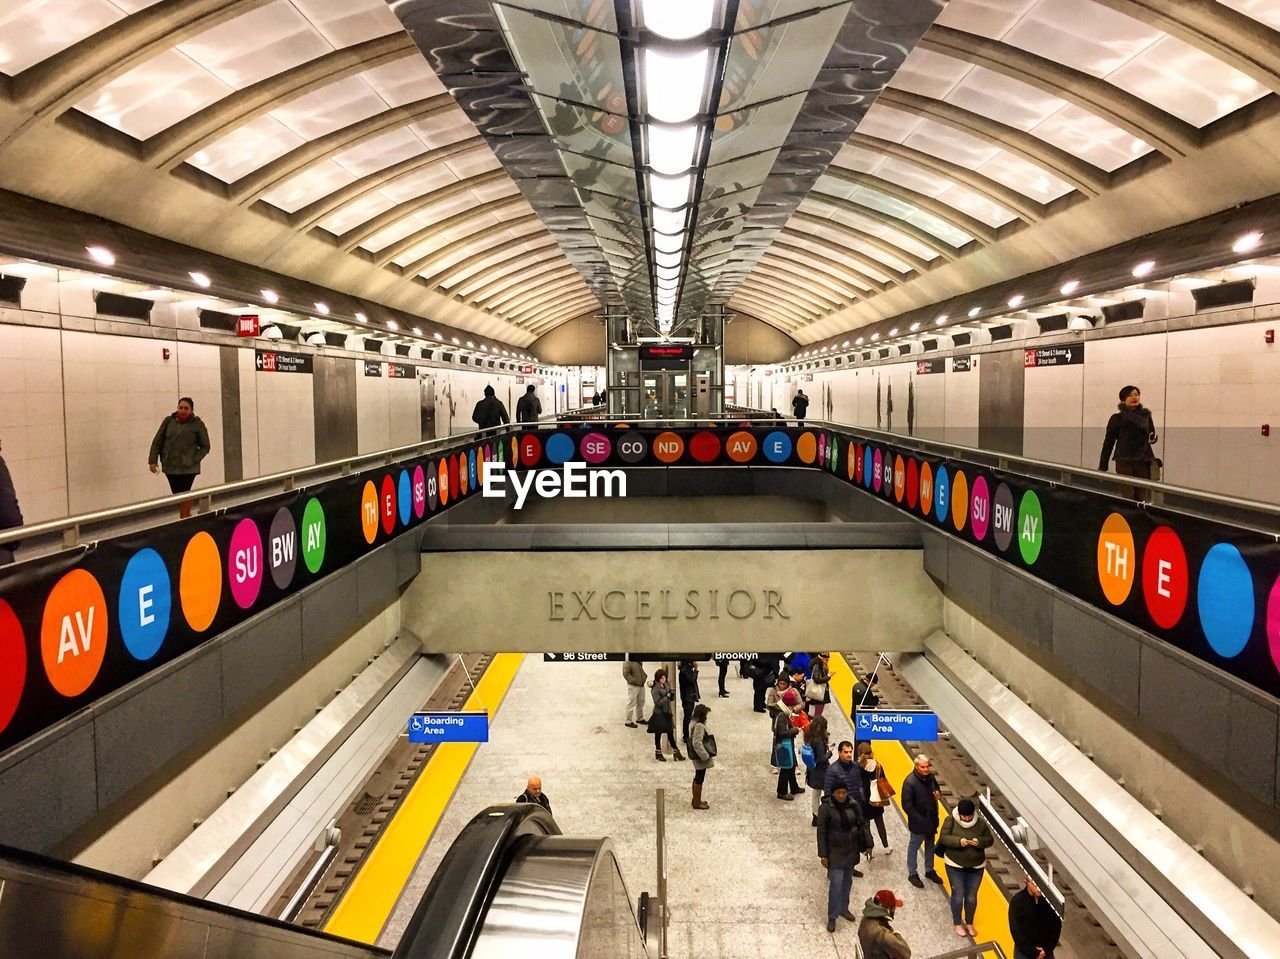 large group of people, public transportation, subway station, subway, real people, indoors, train - vehicle, transportation, passenger, men, rail transportation, illuminated, built structure, commuter, subway train, architecture, women, transportation building - type of building, travel, modern, lifestyles, technology, city, day, people, adult, adults only